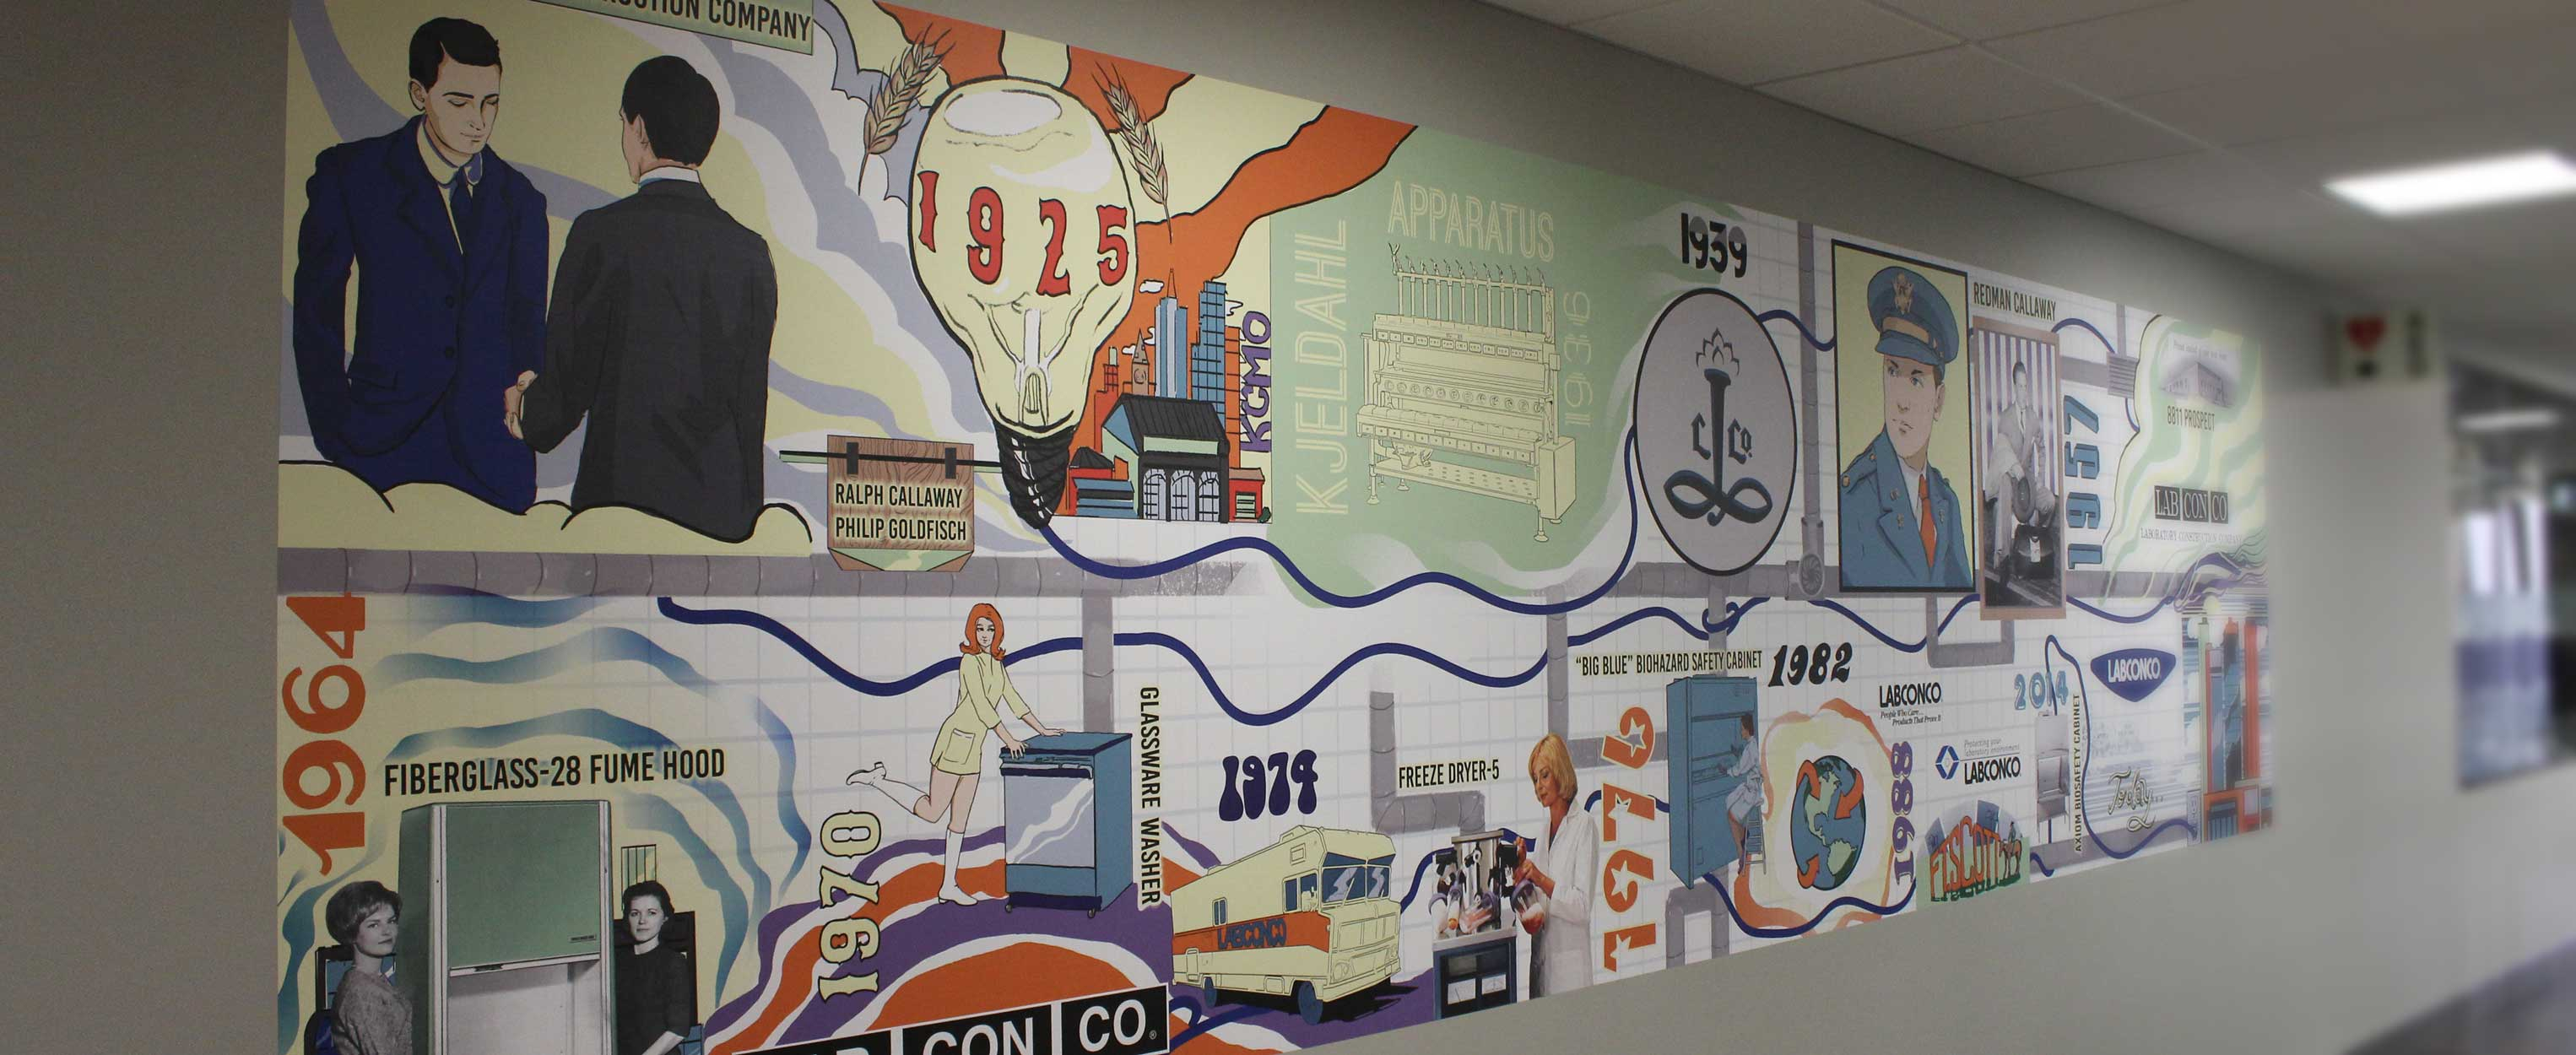 Labconco History Mural created by Jessie Green and Eien Carpenter at KCAI